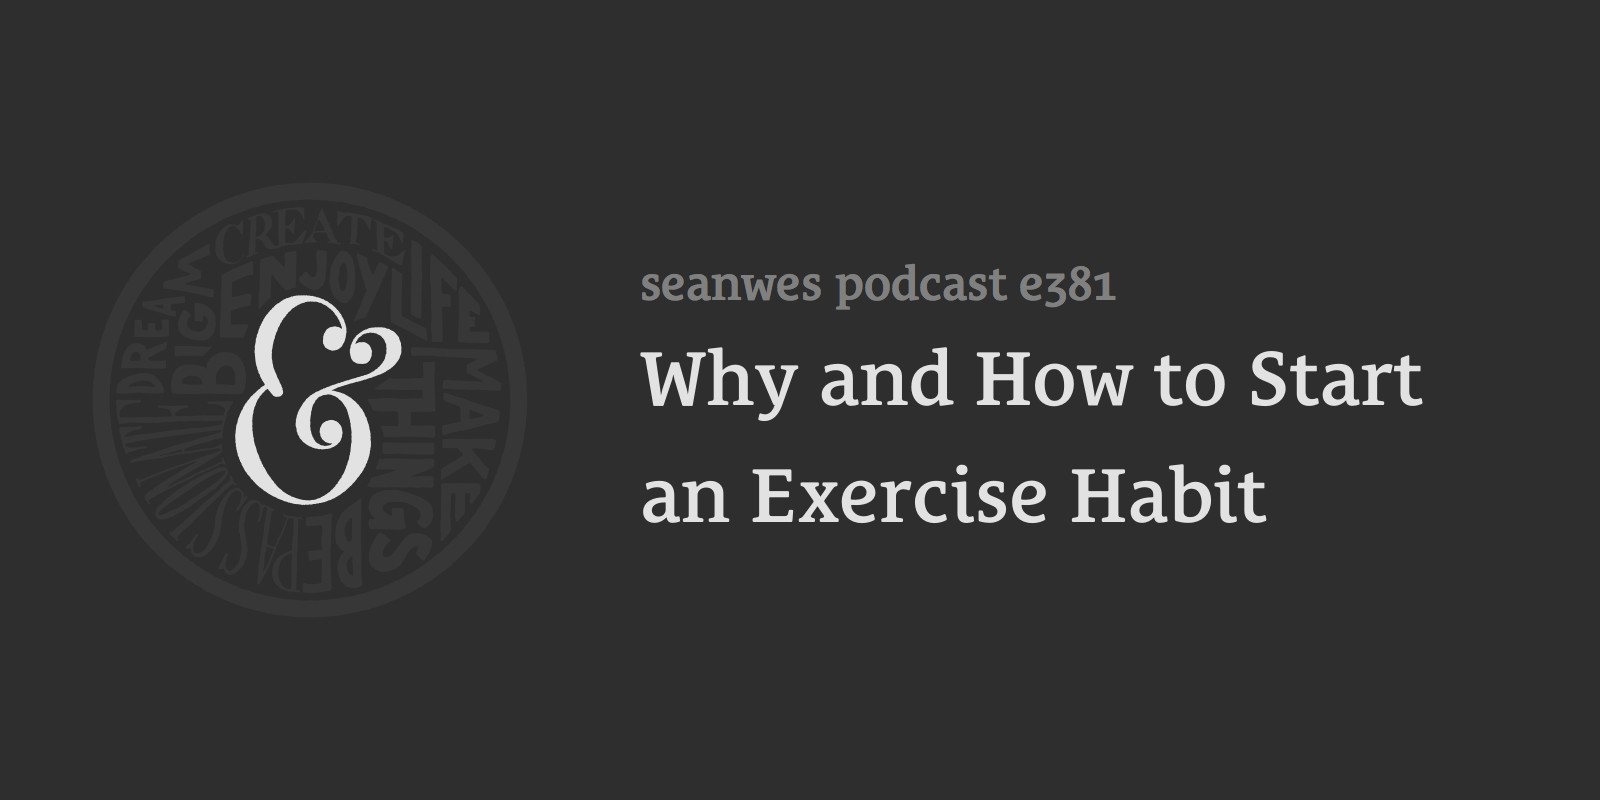 Why and How to Start an Exercise Habit